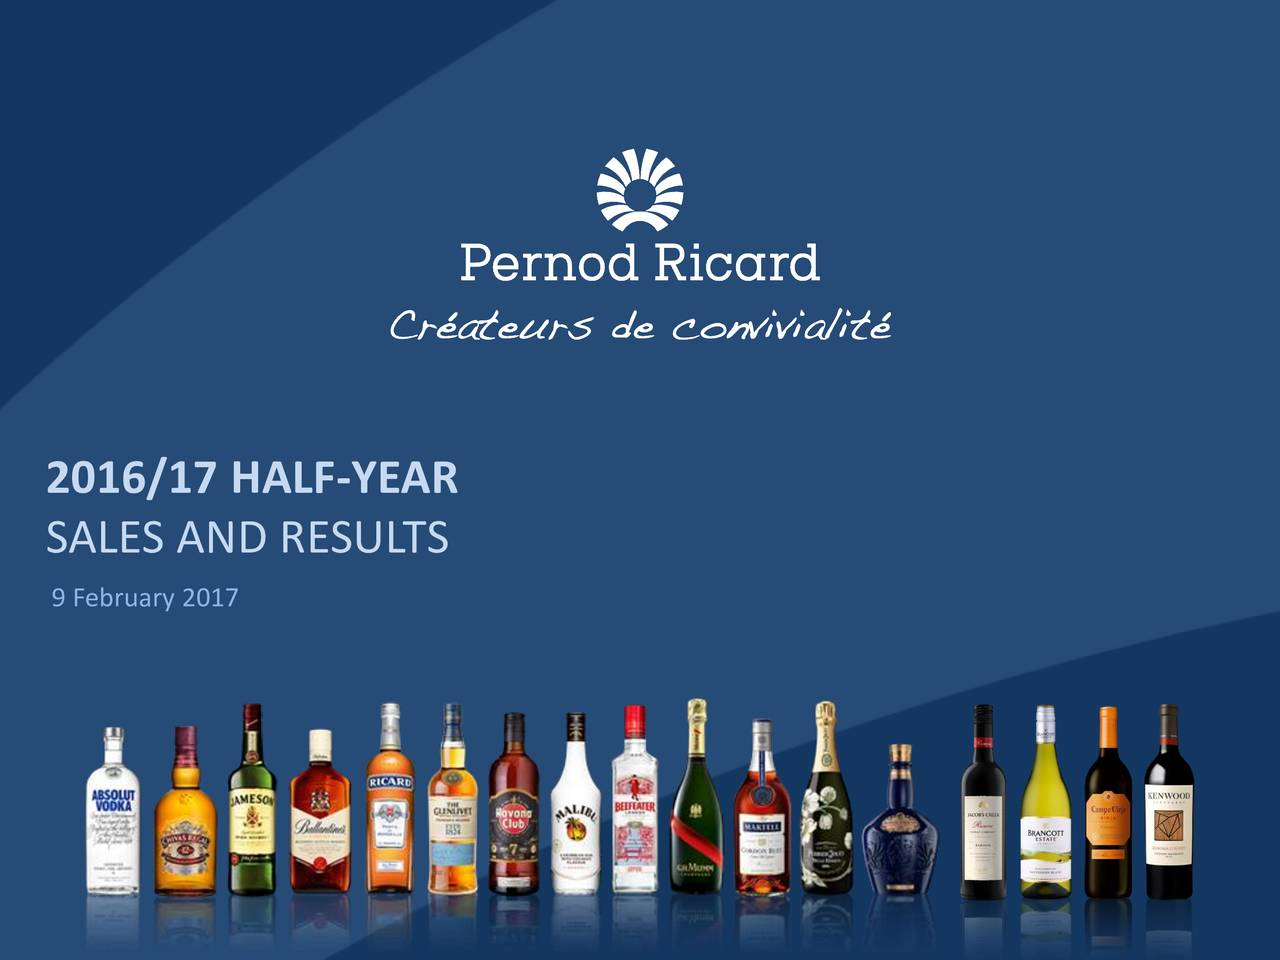 SALES AND RESULTS 9 February 2017